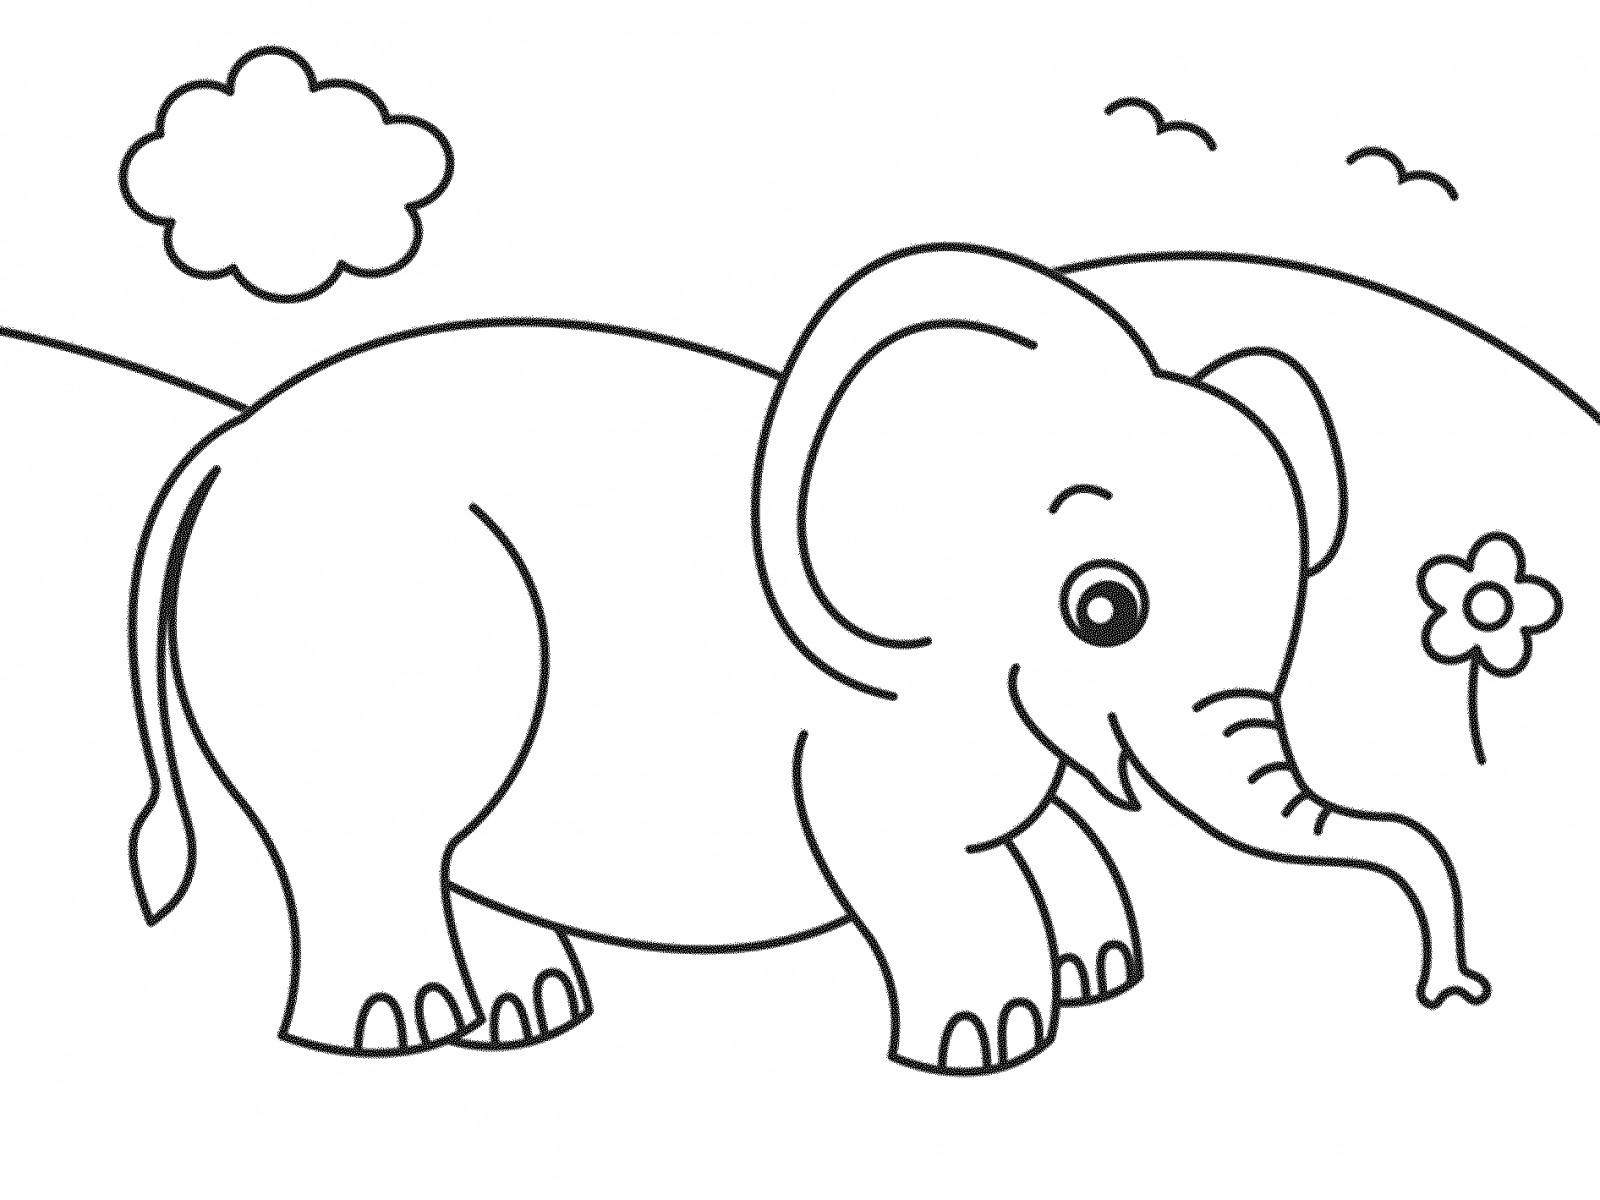 elephant coloring baby elephant coloring pages at getdrawings free download elephant coloring